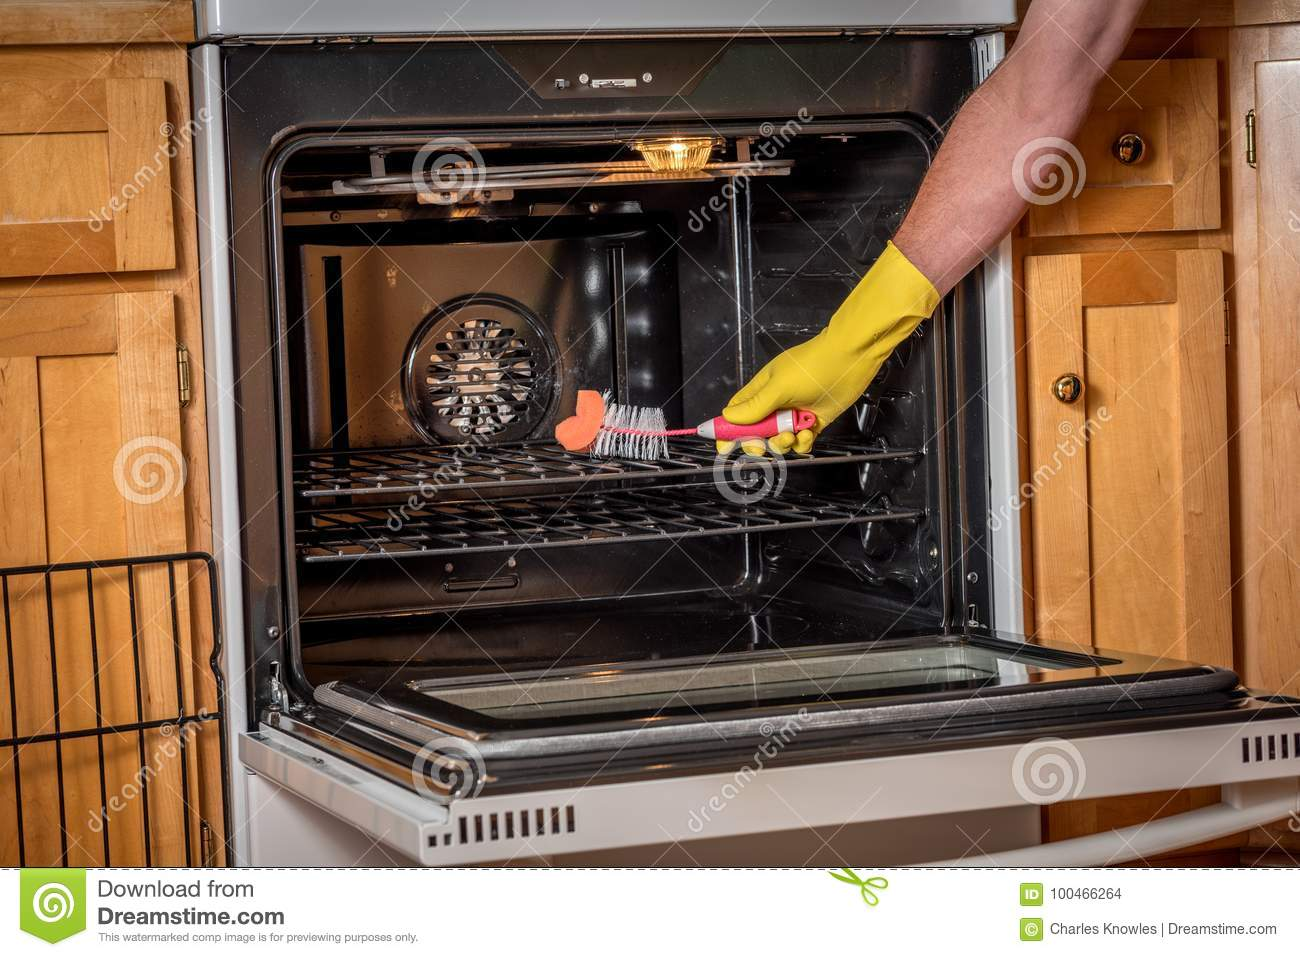 Convection Oven Cleaning Demonstration With A Hand Brush Stock Photo